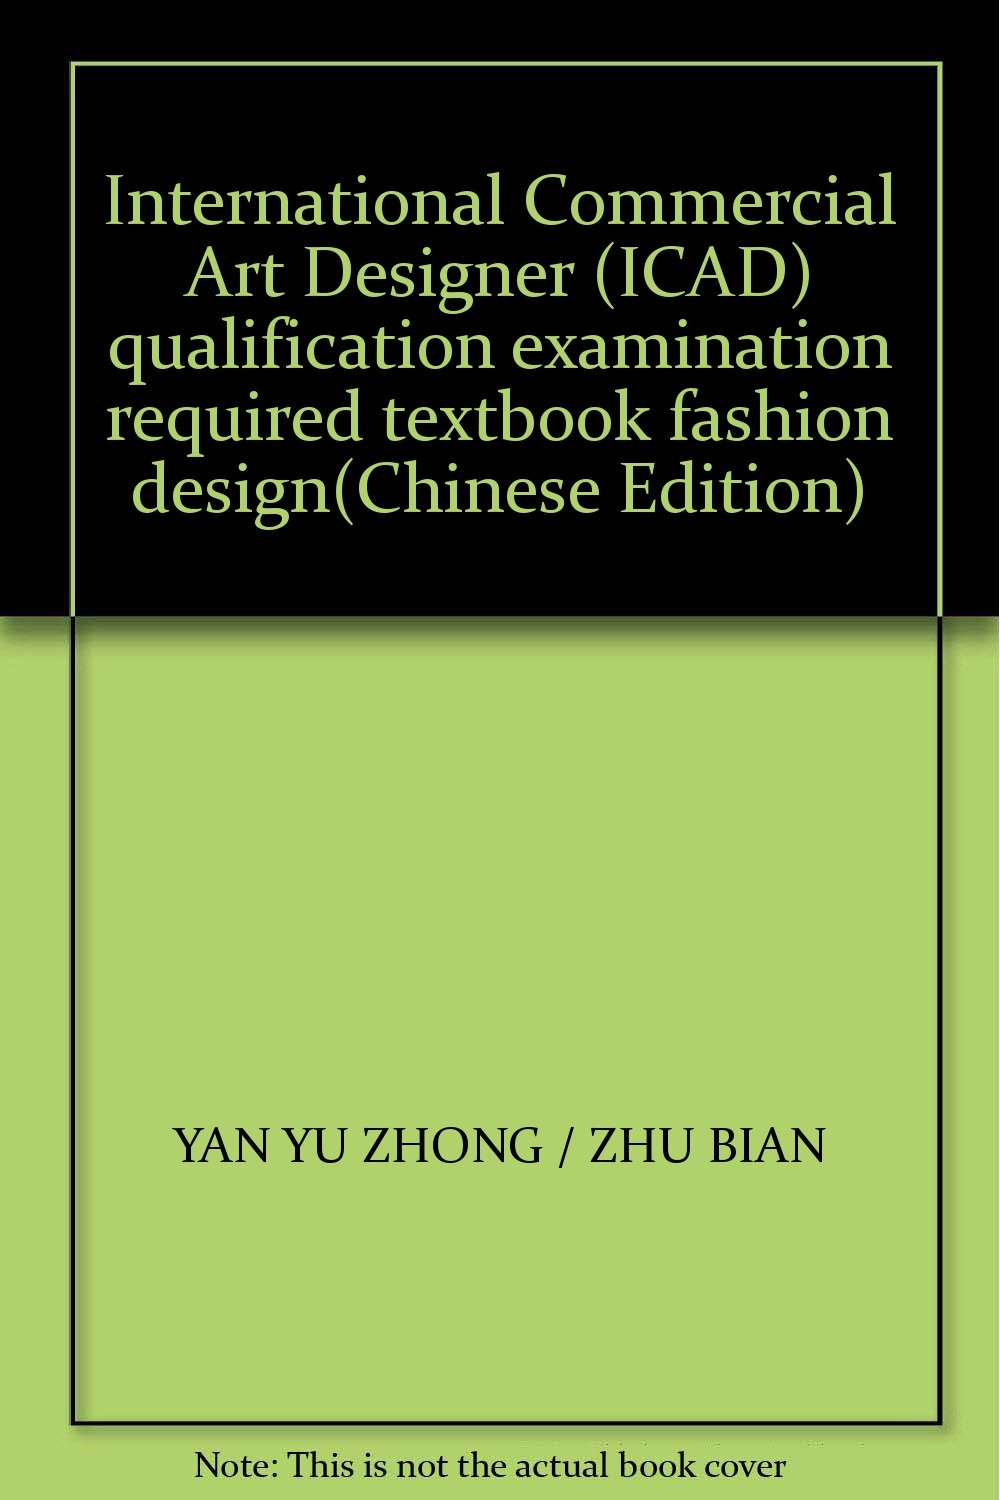 International Commercial Art Designer Icad Qualification Examination Required Textbook Fashion Design Chinese Edition Yan Yu Zhong Zhu Bian 9787531812692 Amazon Com Books